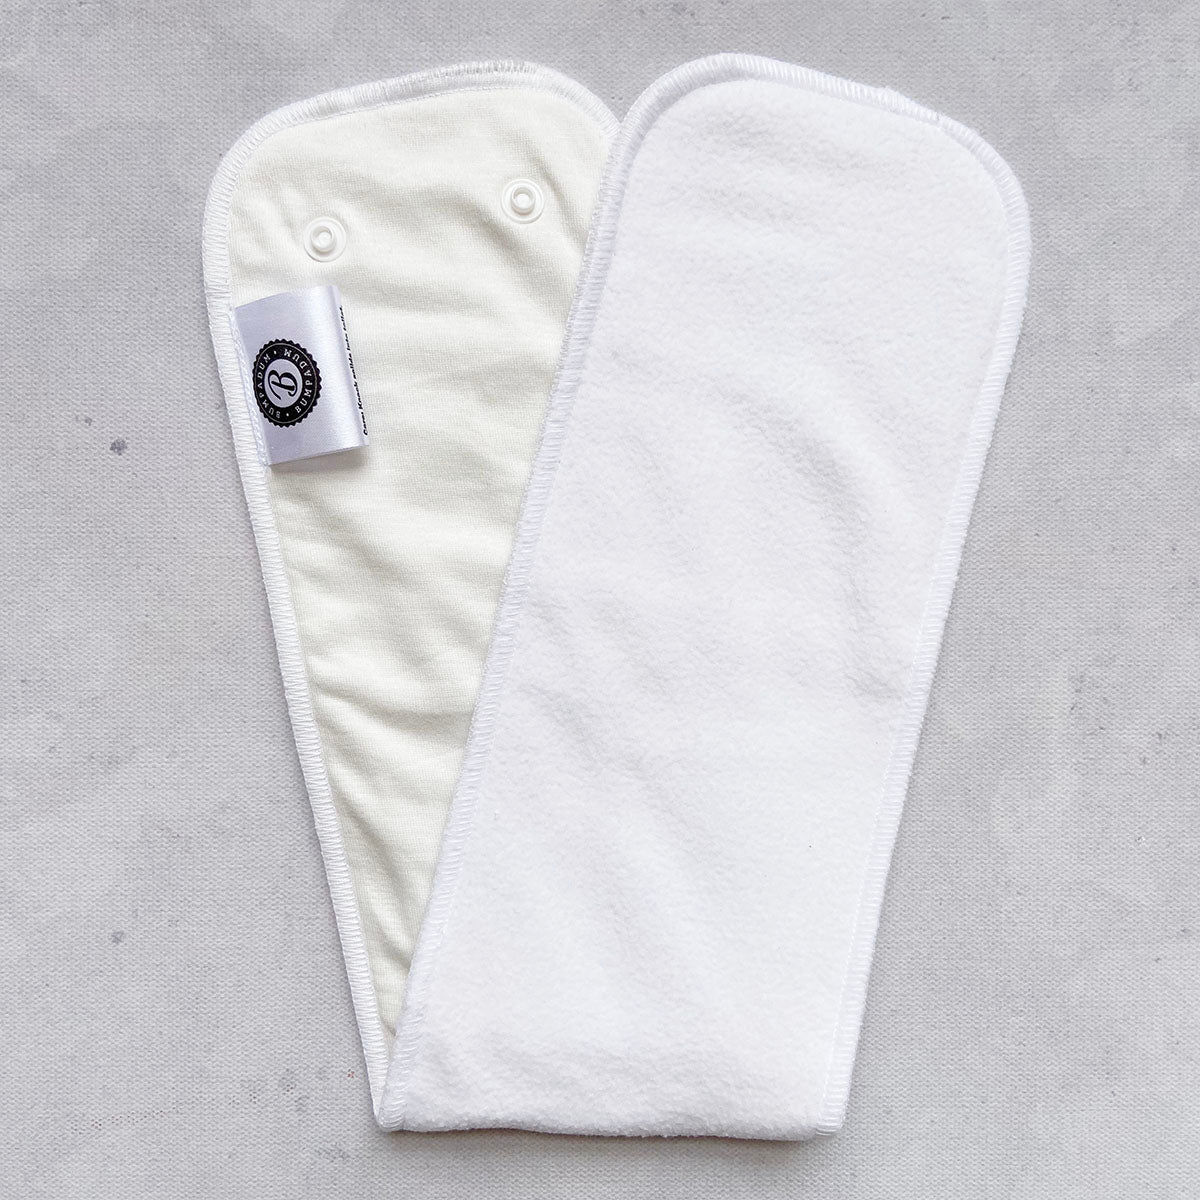 Stay Dry Organic Cotton Insert (Two Options Available)